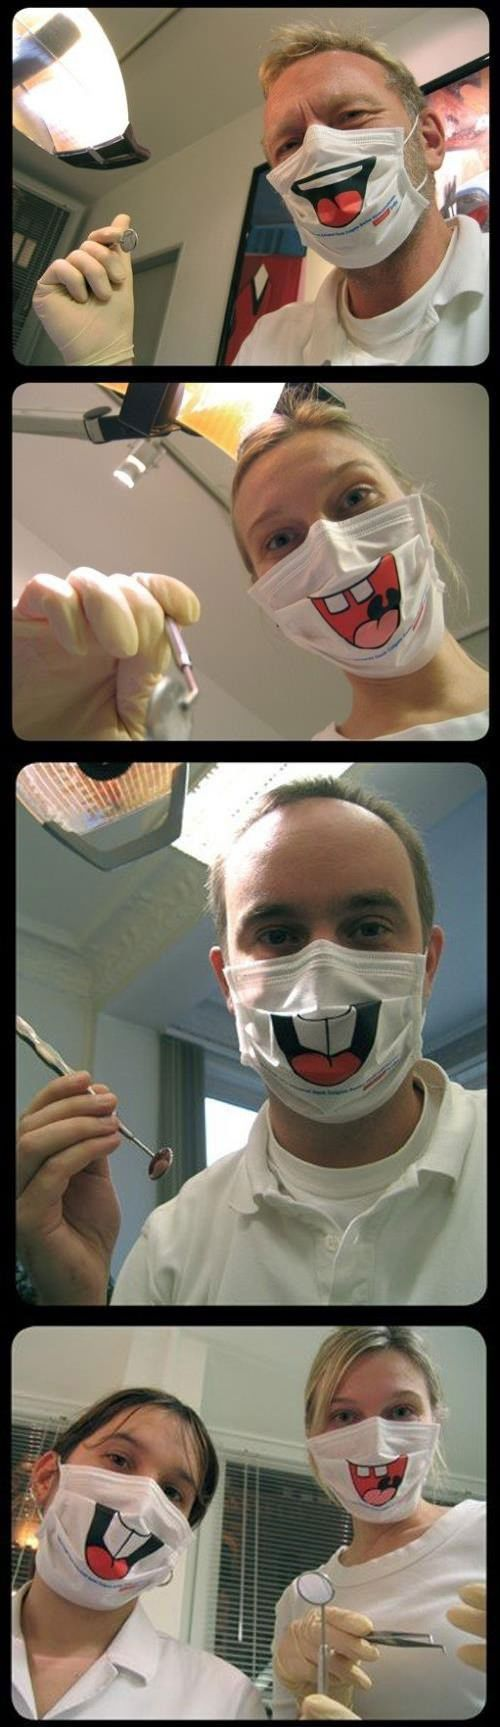 Dentists Smile Face Masks, Click the link to view todays funniest pictures!